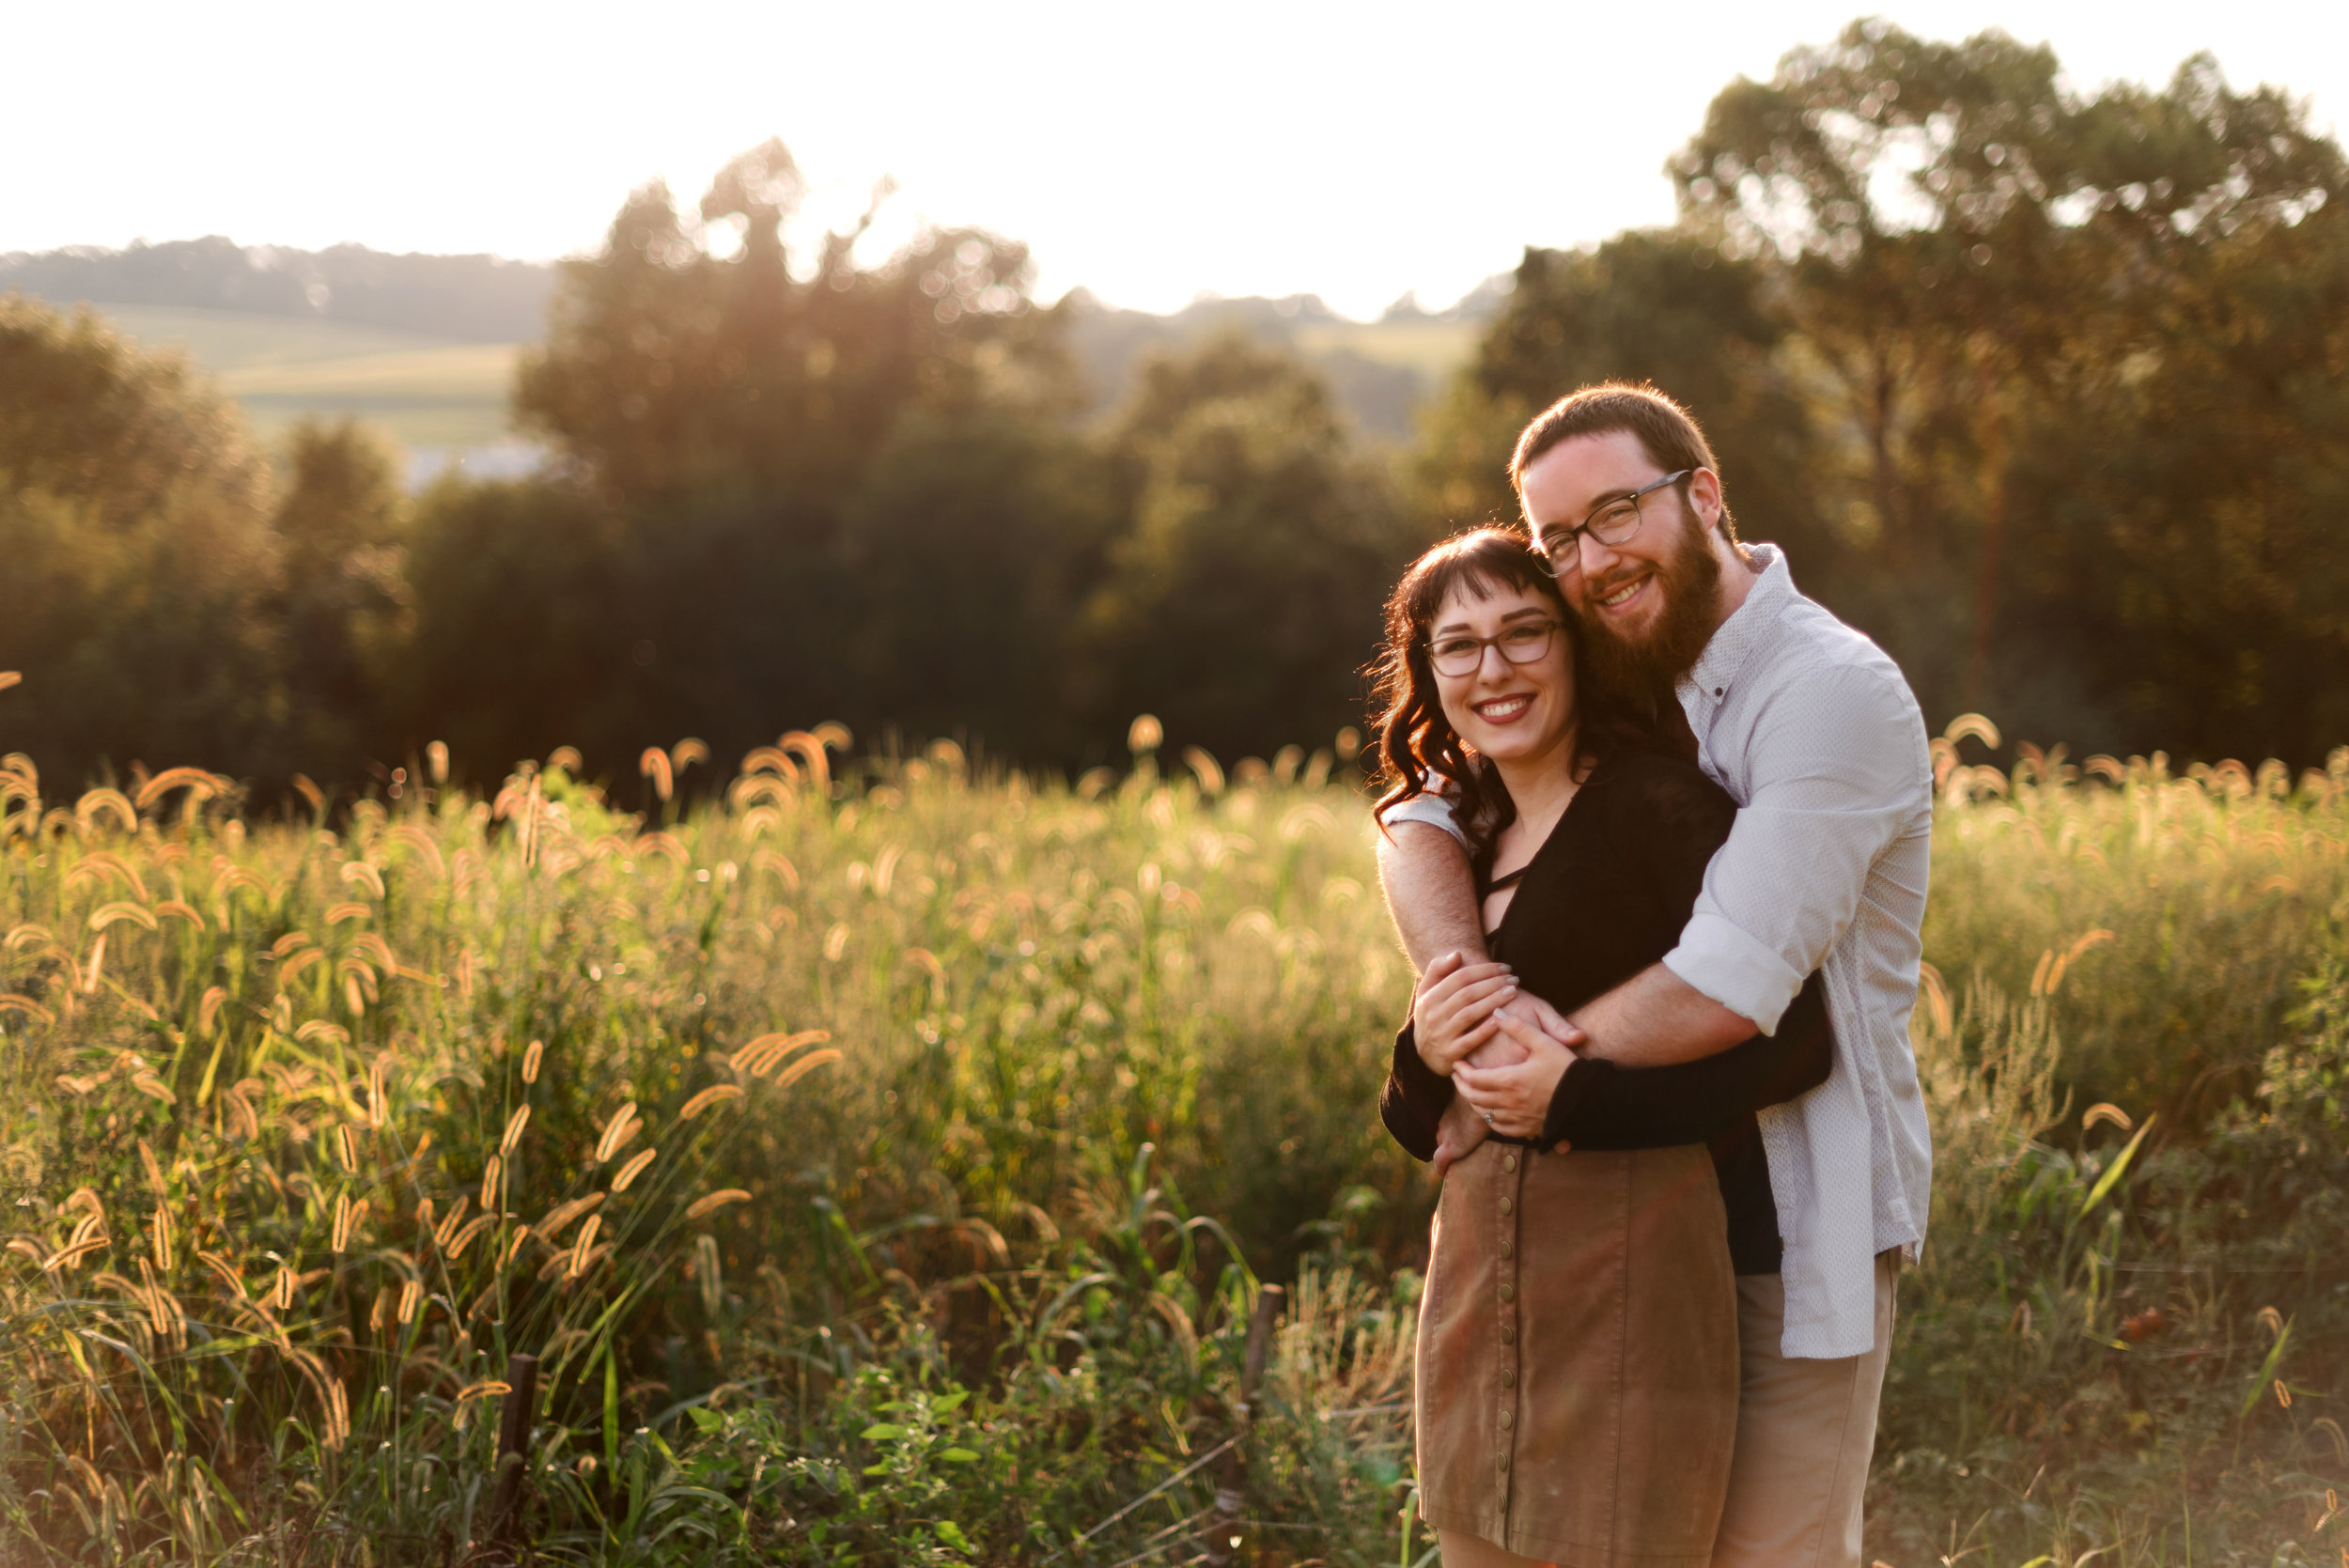 Shunkwiler Photo Maryland Engagement Session